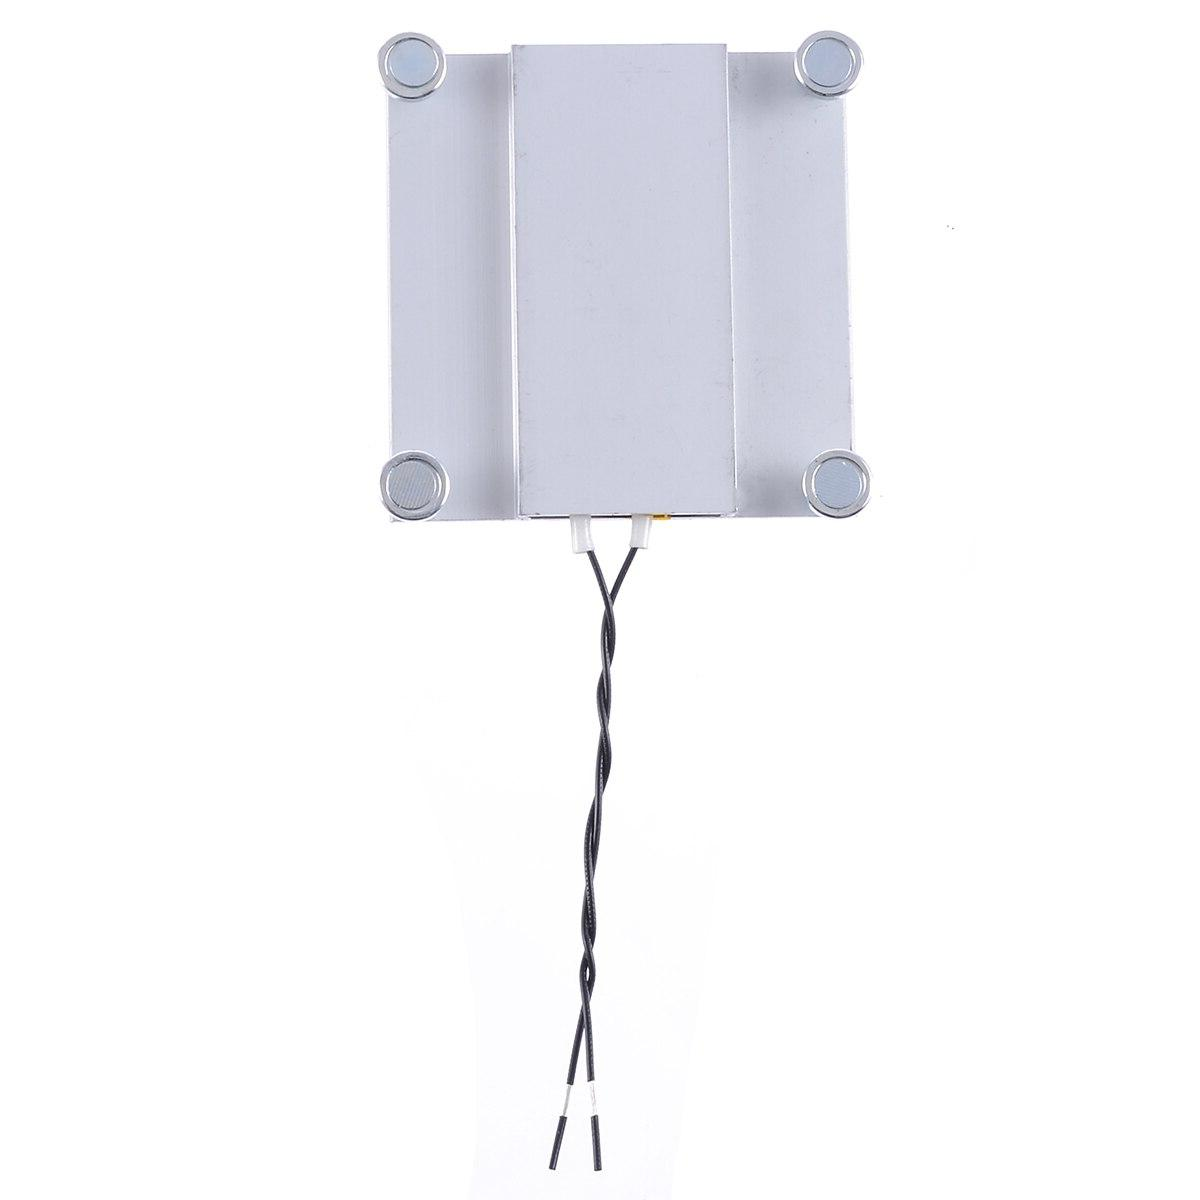 1pc <font><b>Thermostat</b></font> Heating Soldering For TV LED Aluminum 68*70mm